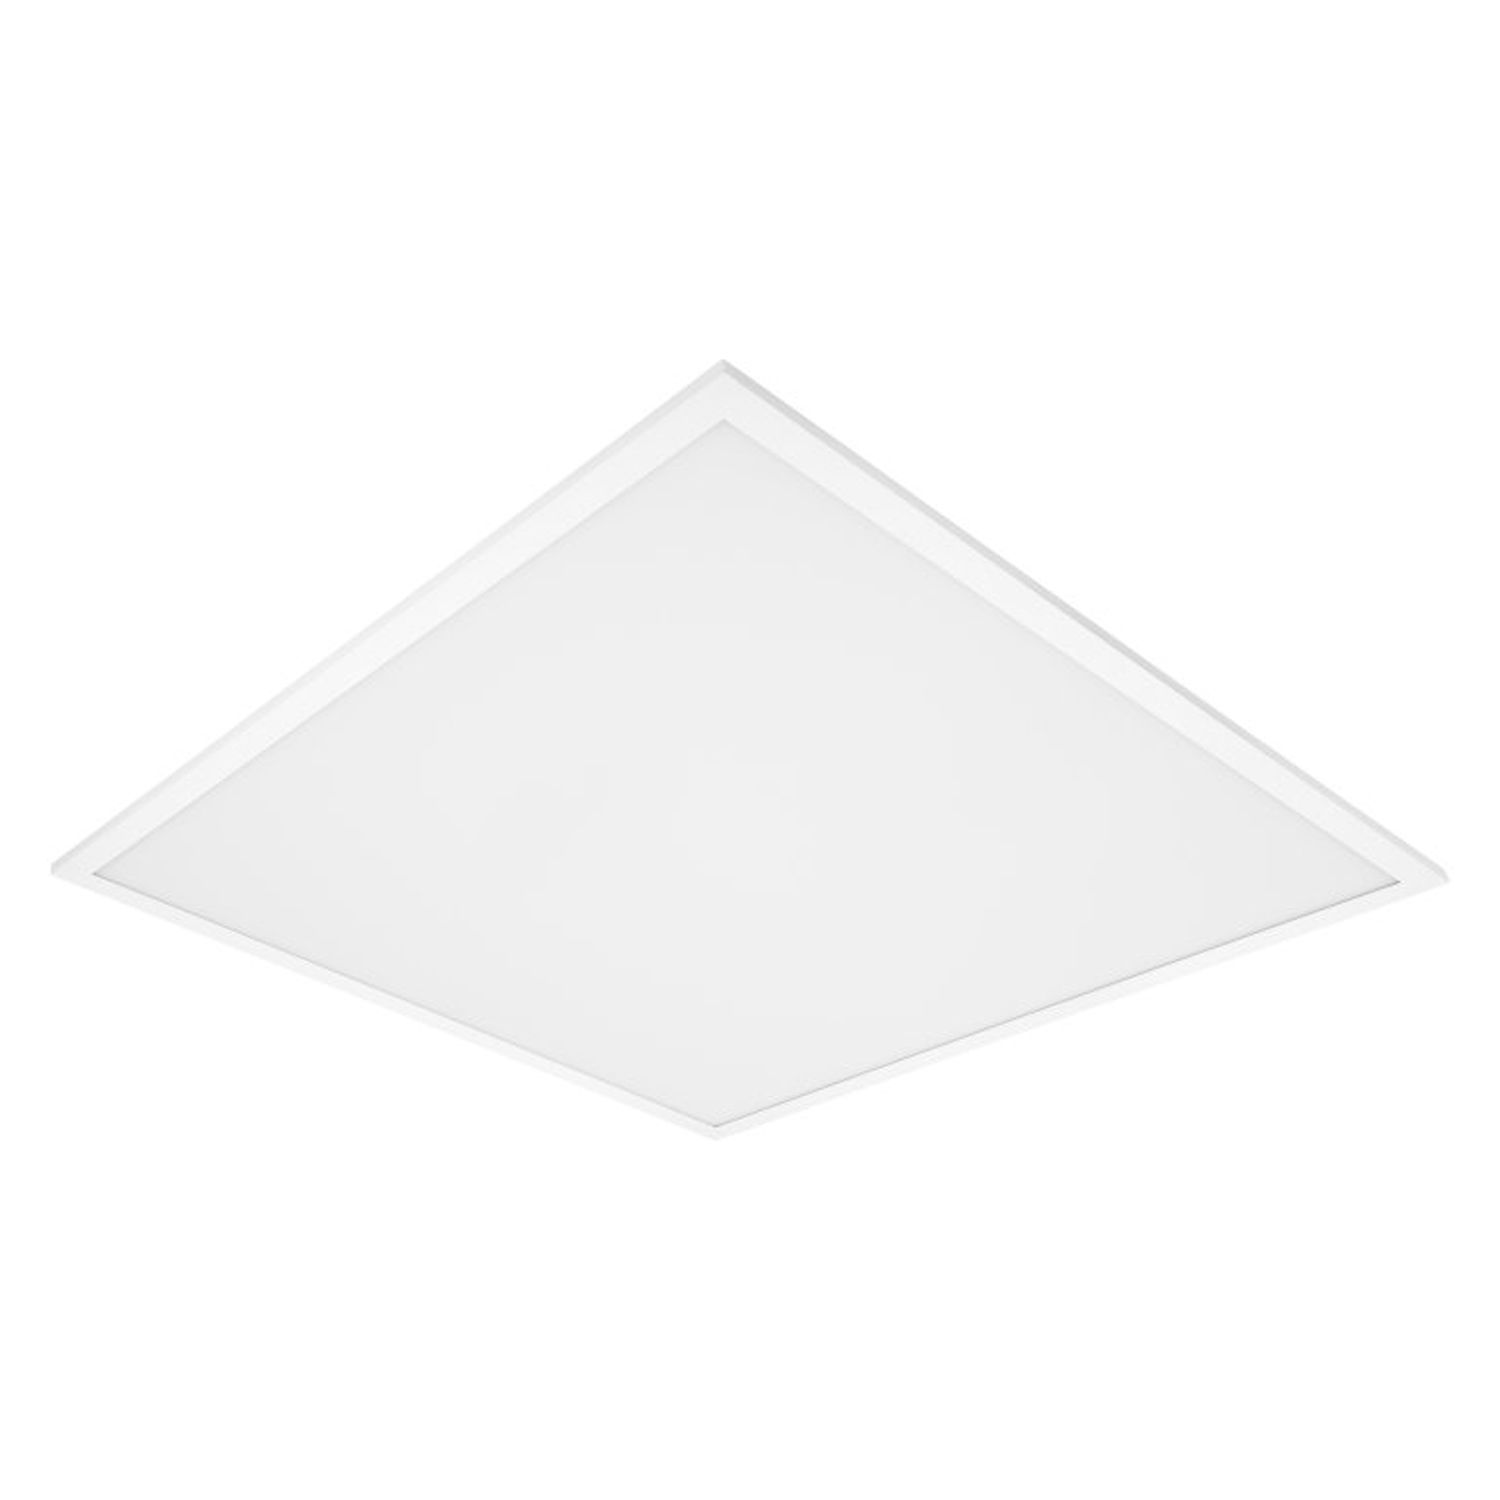 Ledvance LED Panel Performance 62.5x62.5cm 4000K 25W | Cool White